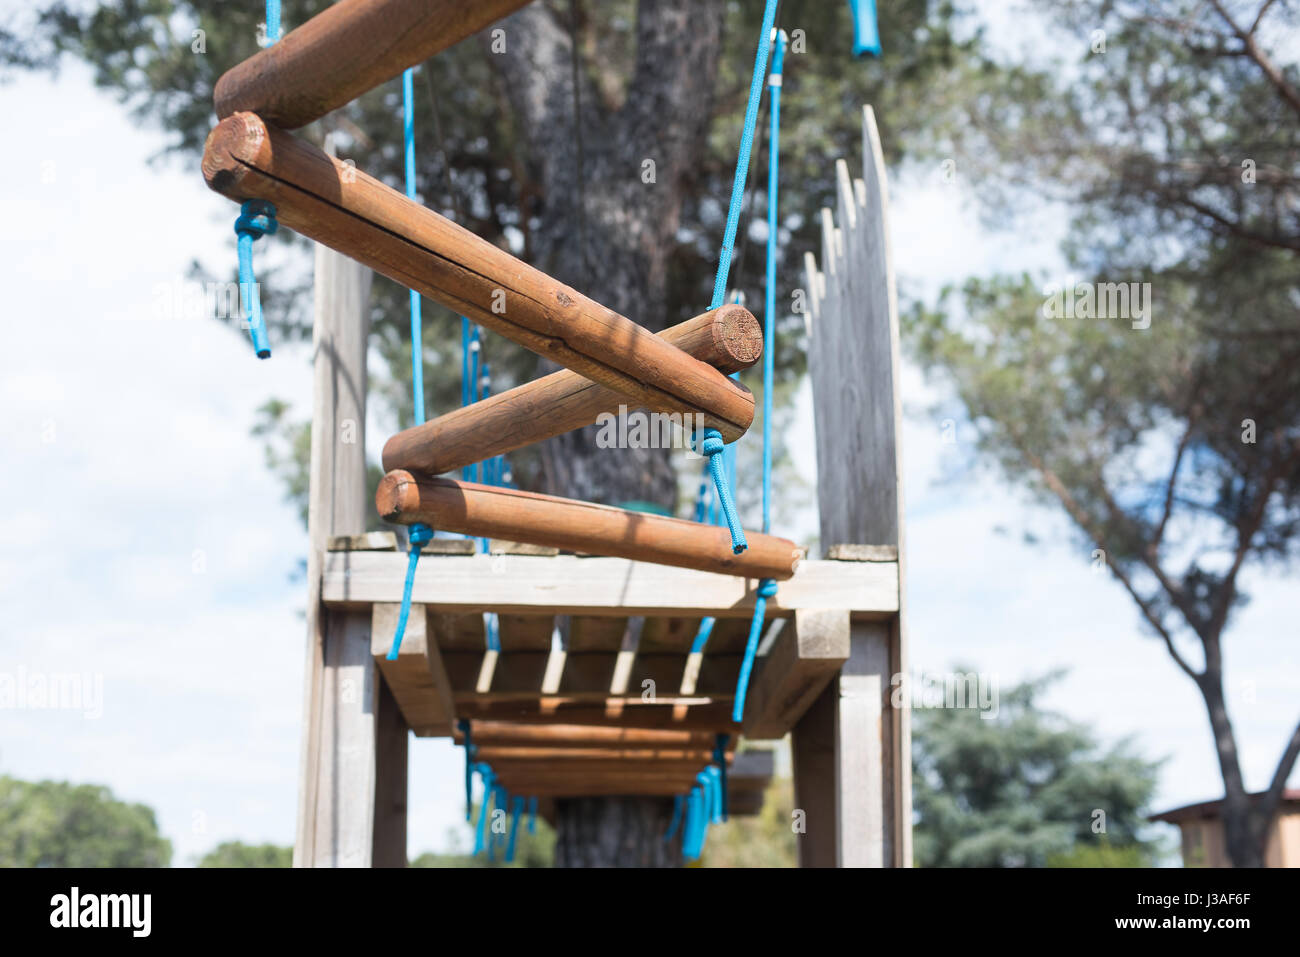 Adventure playground suspended test path, selective focus obstacle in foreground - Stock Image